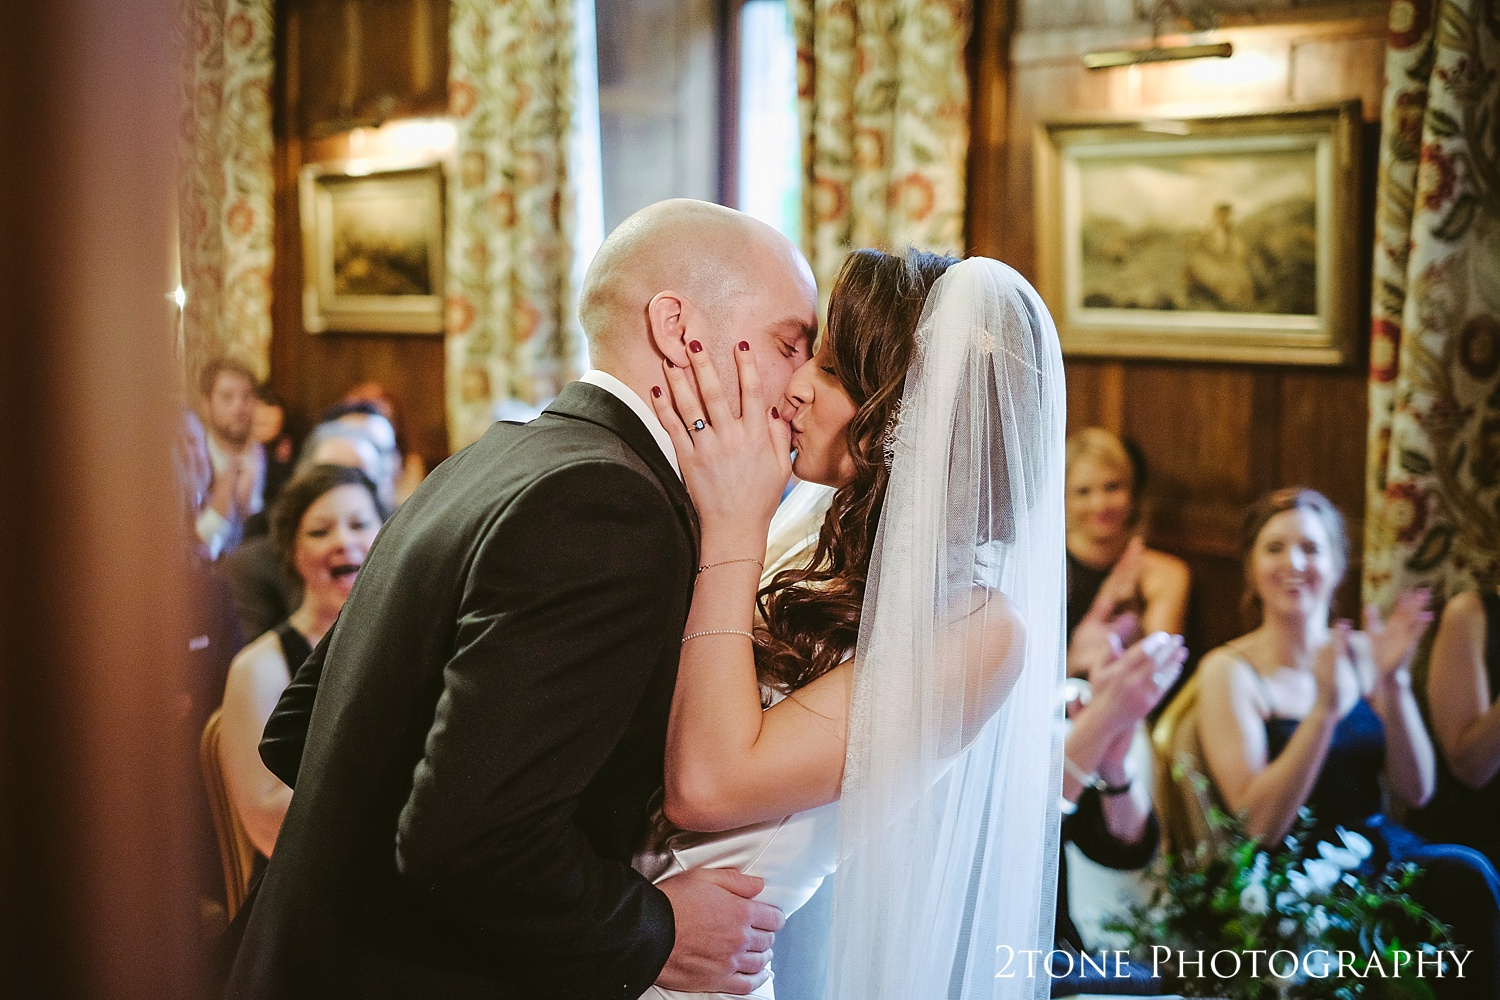 The first kiss at Ellingham Hall. Winter wedding photography by www.2tonephotography.co.uk